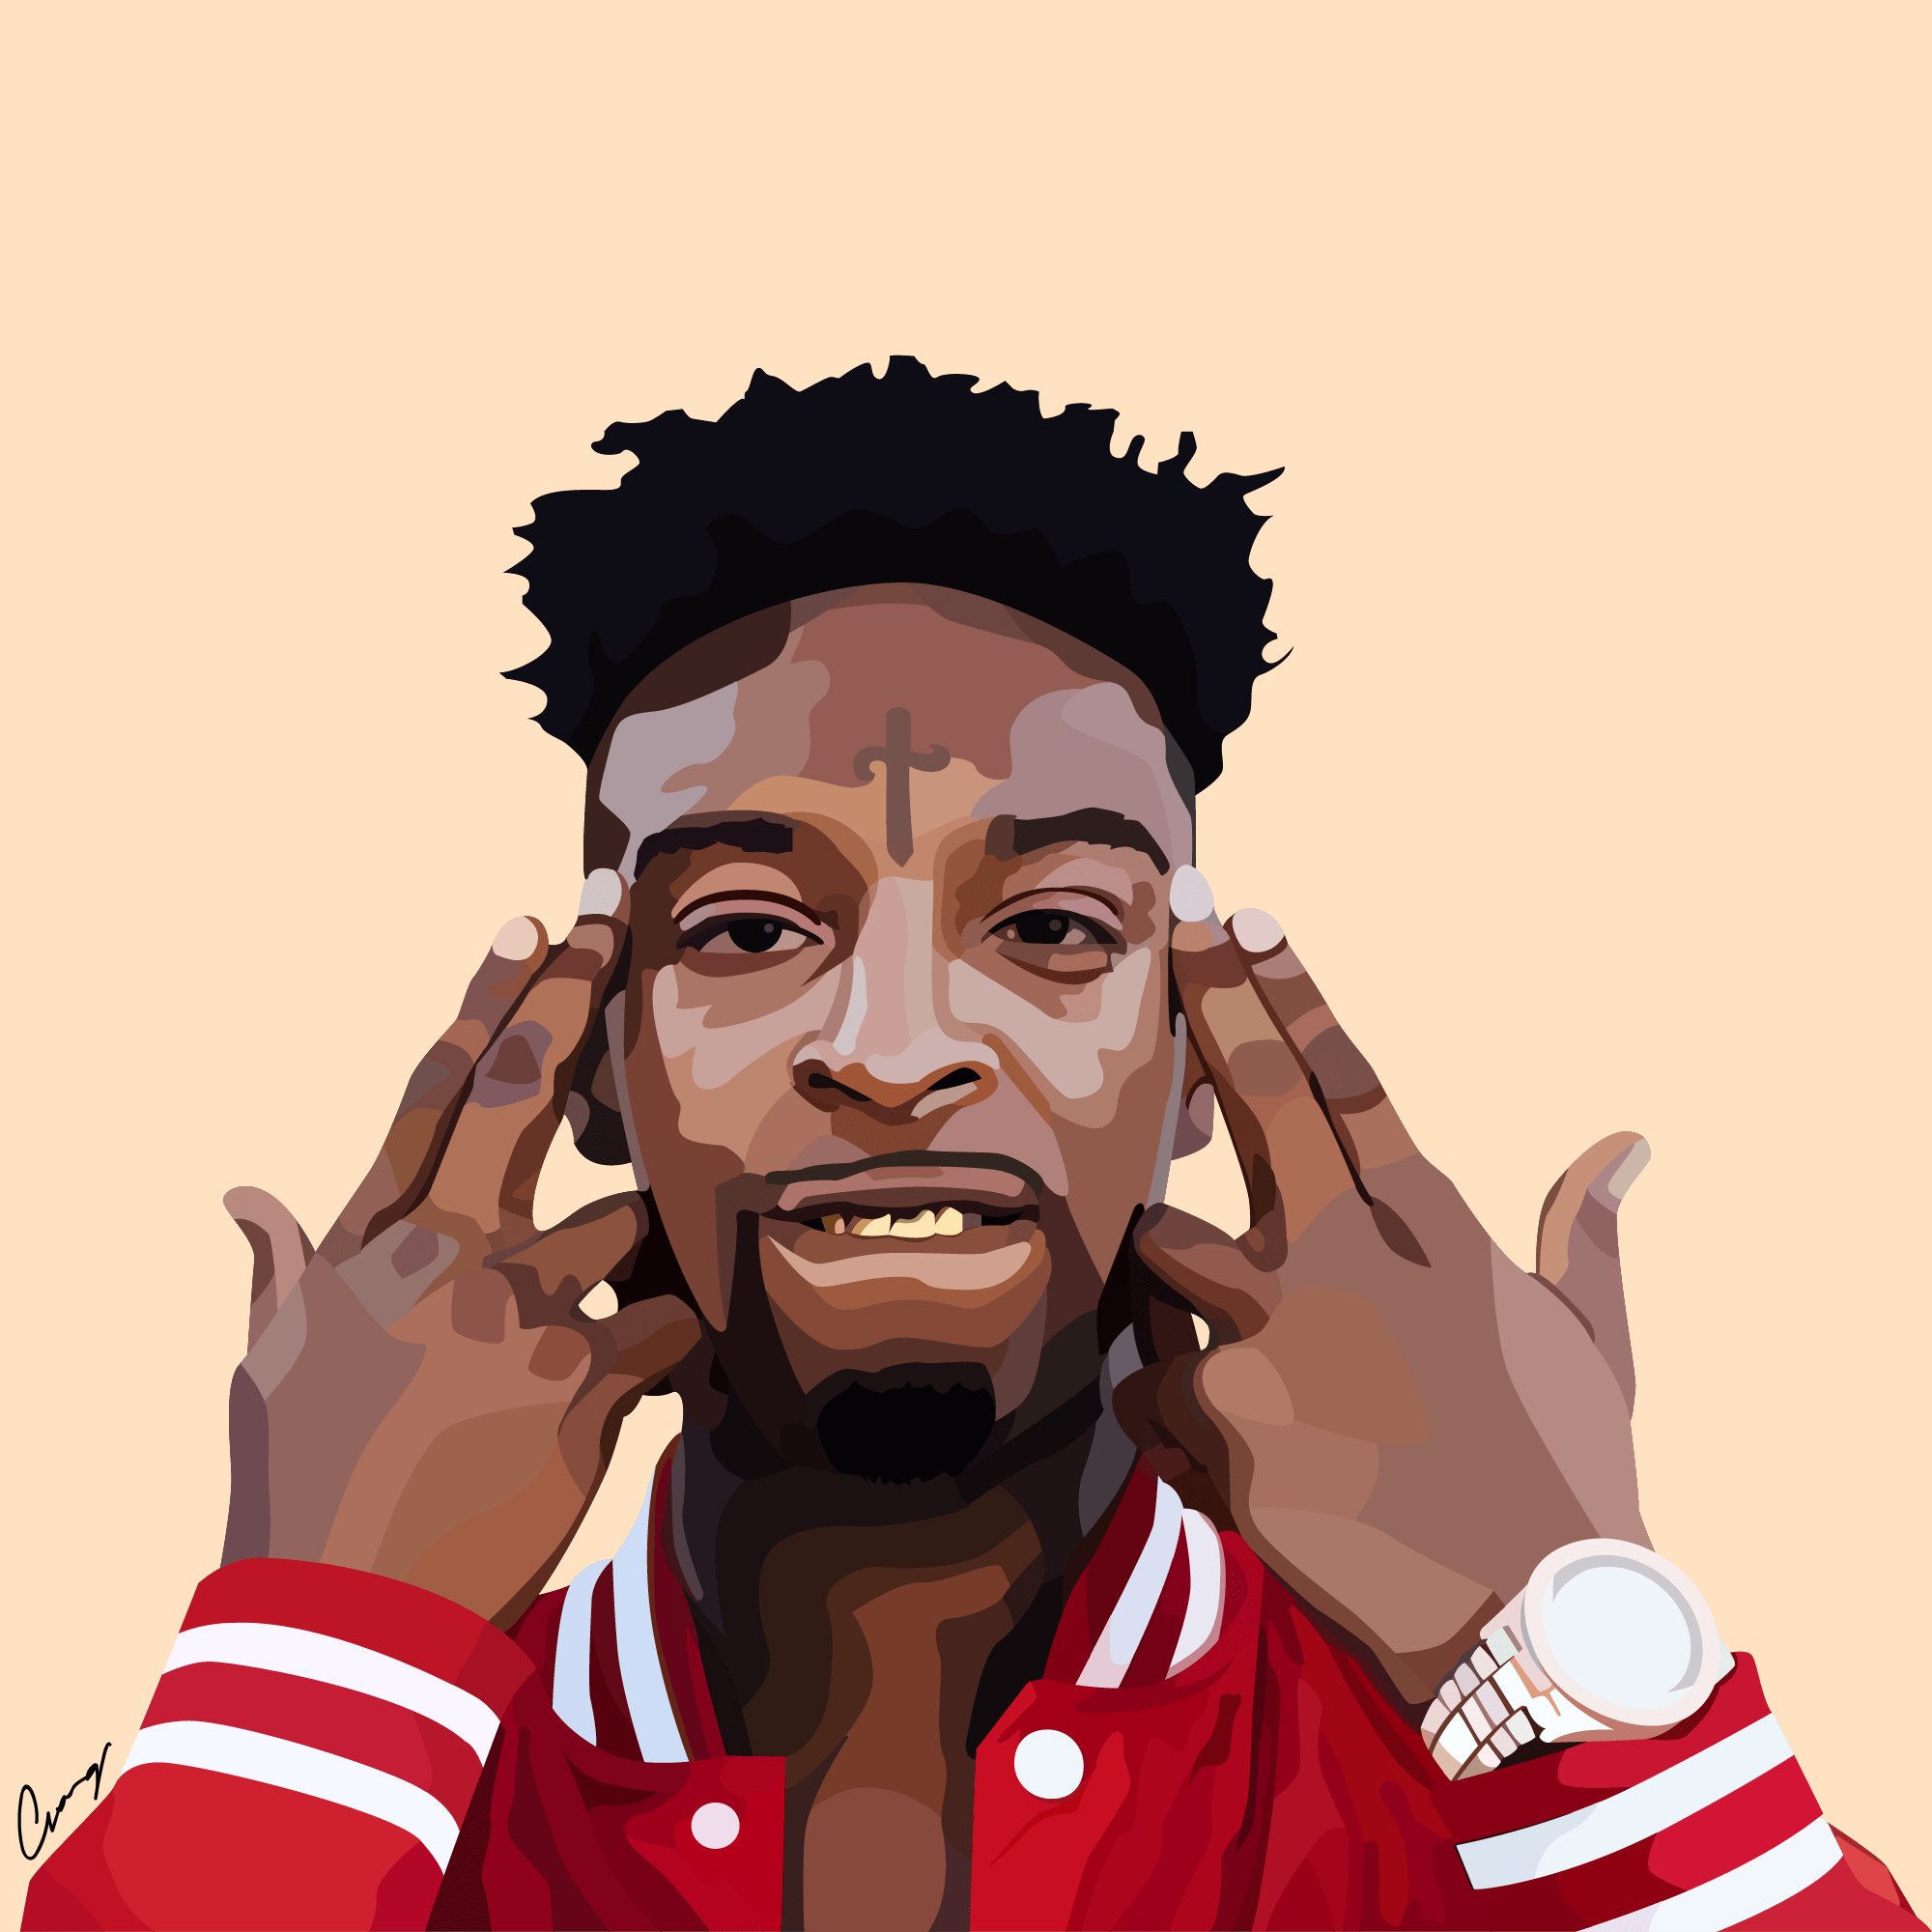 Issa 21 savage wallpapers top free issa 21 savage - 21 savage iphone wallpaper ...